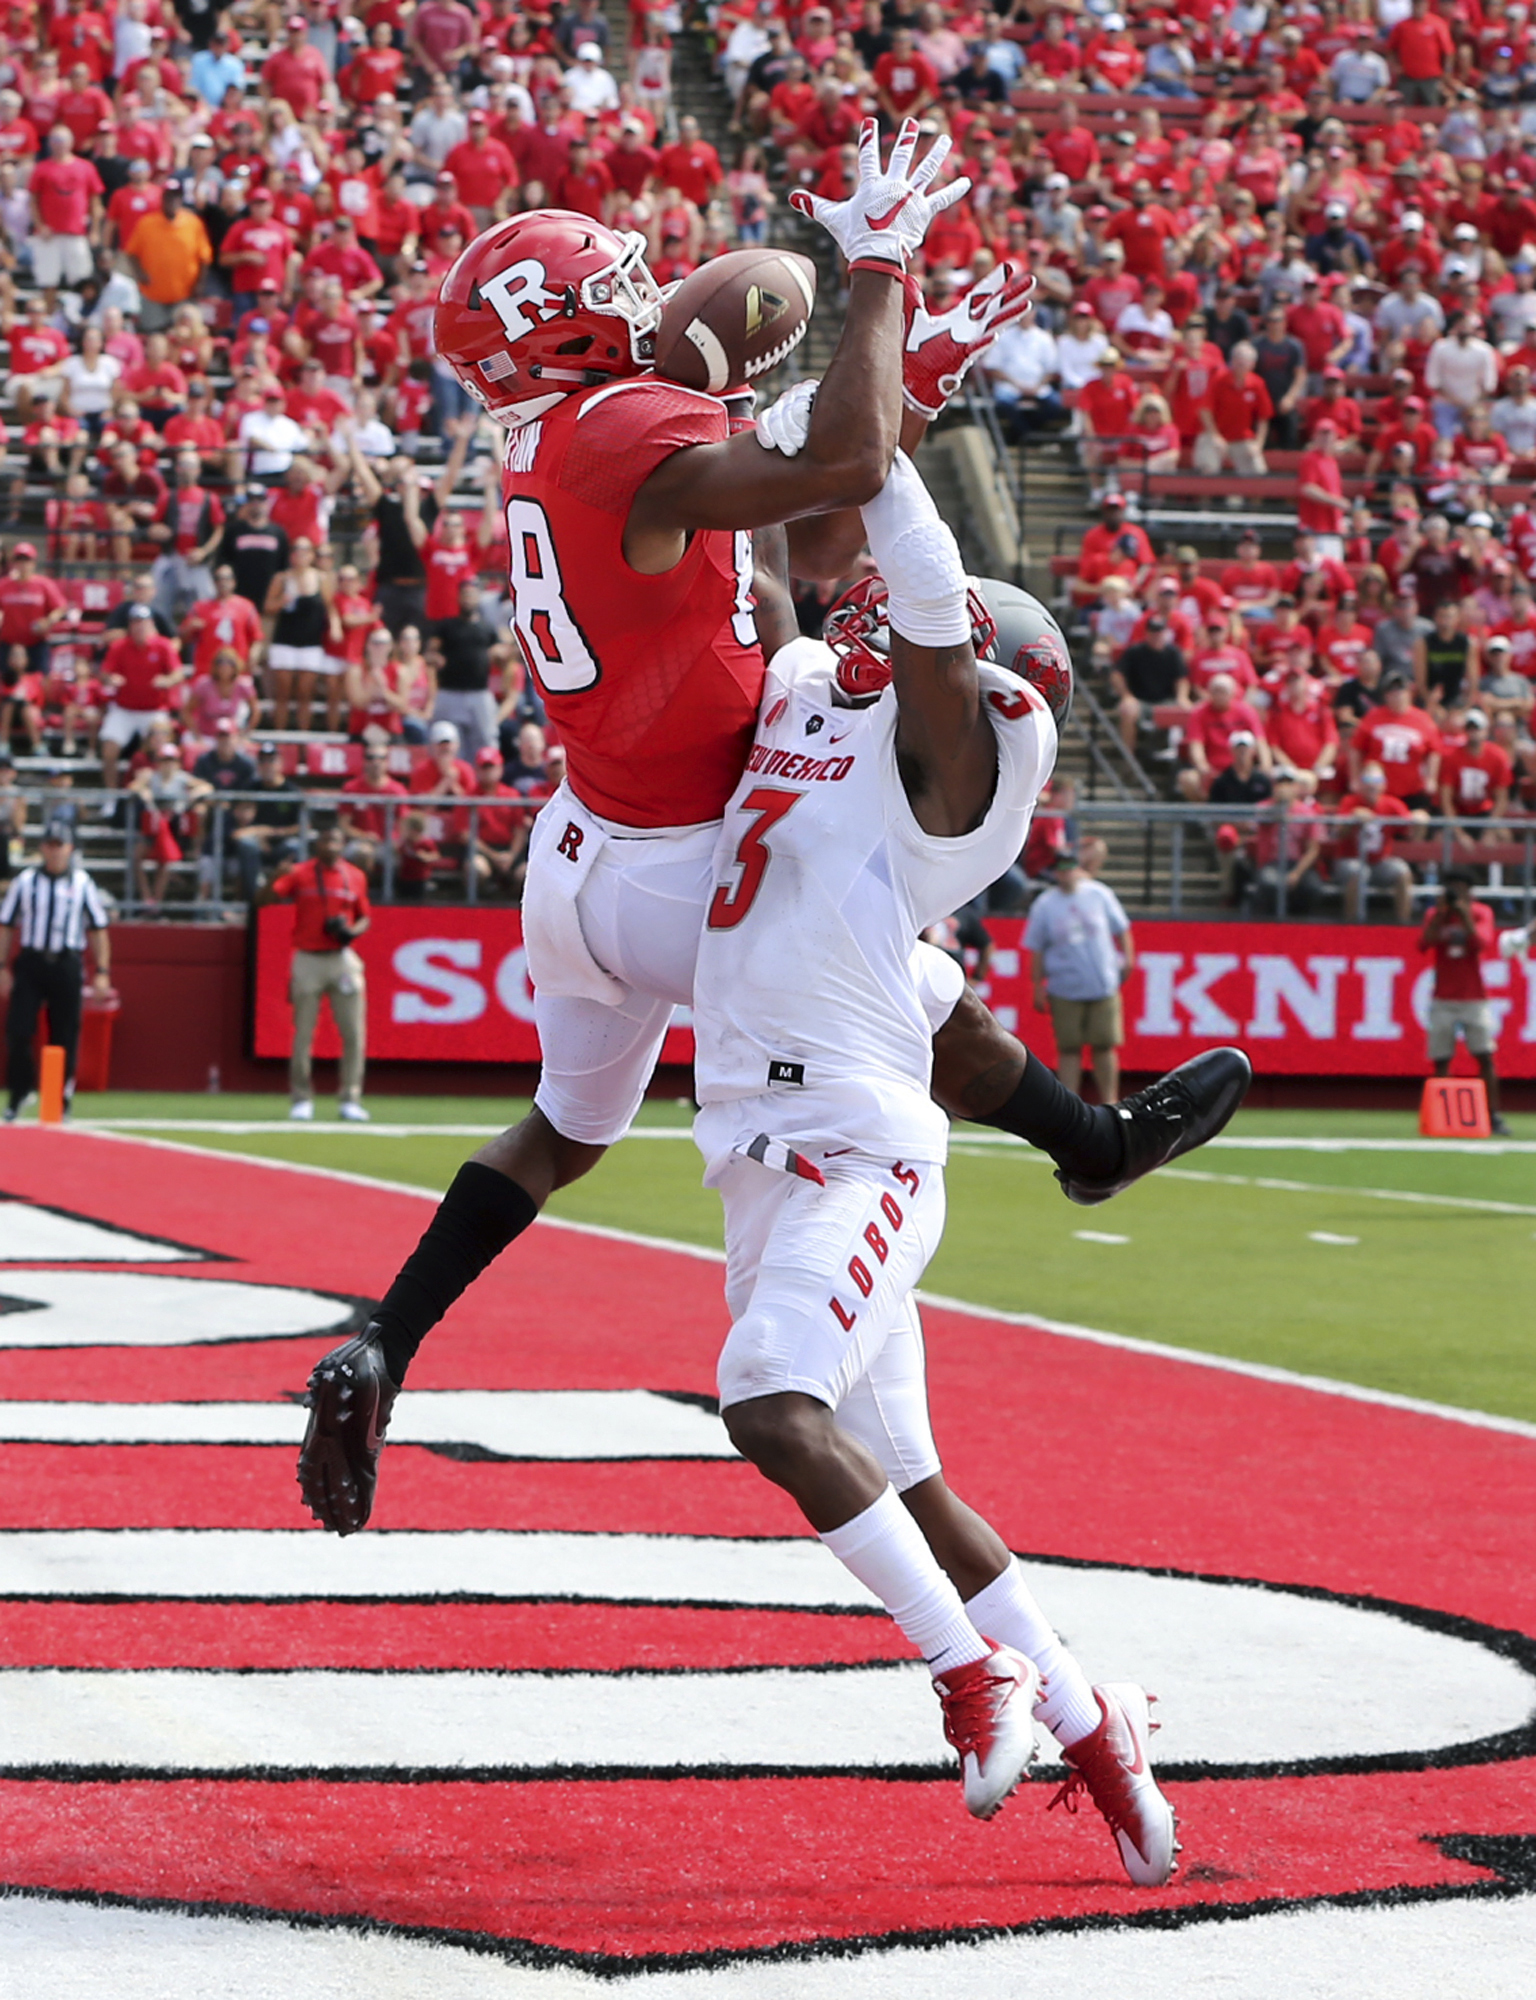 Rutgers wide receiver Andre Patton (88) catches a pass for a touchdown as New Mexico running back Richard McQuarley (3) defends during the first half of a NCAA college football game Saturday, Sept. 17, 2016, in Piscataway, N.J. (AP Photo/Mel Evans)